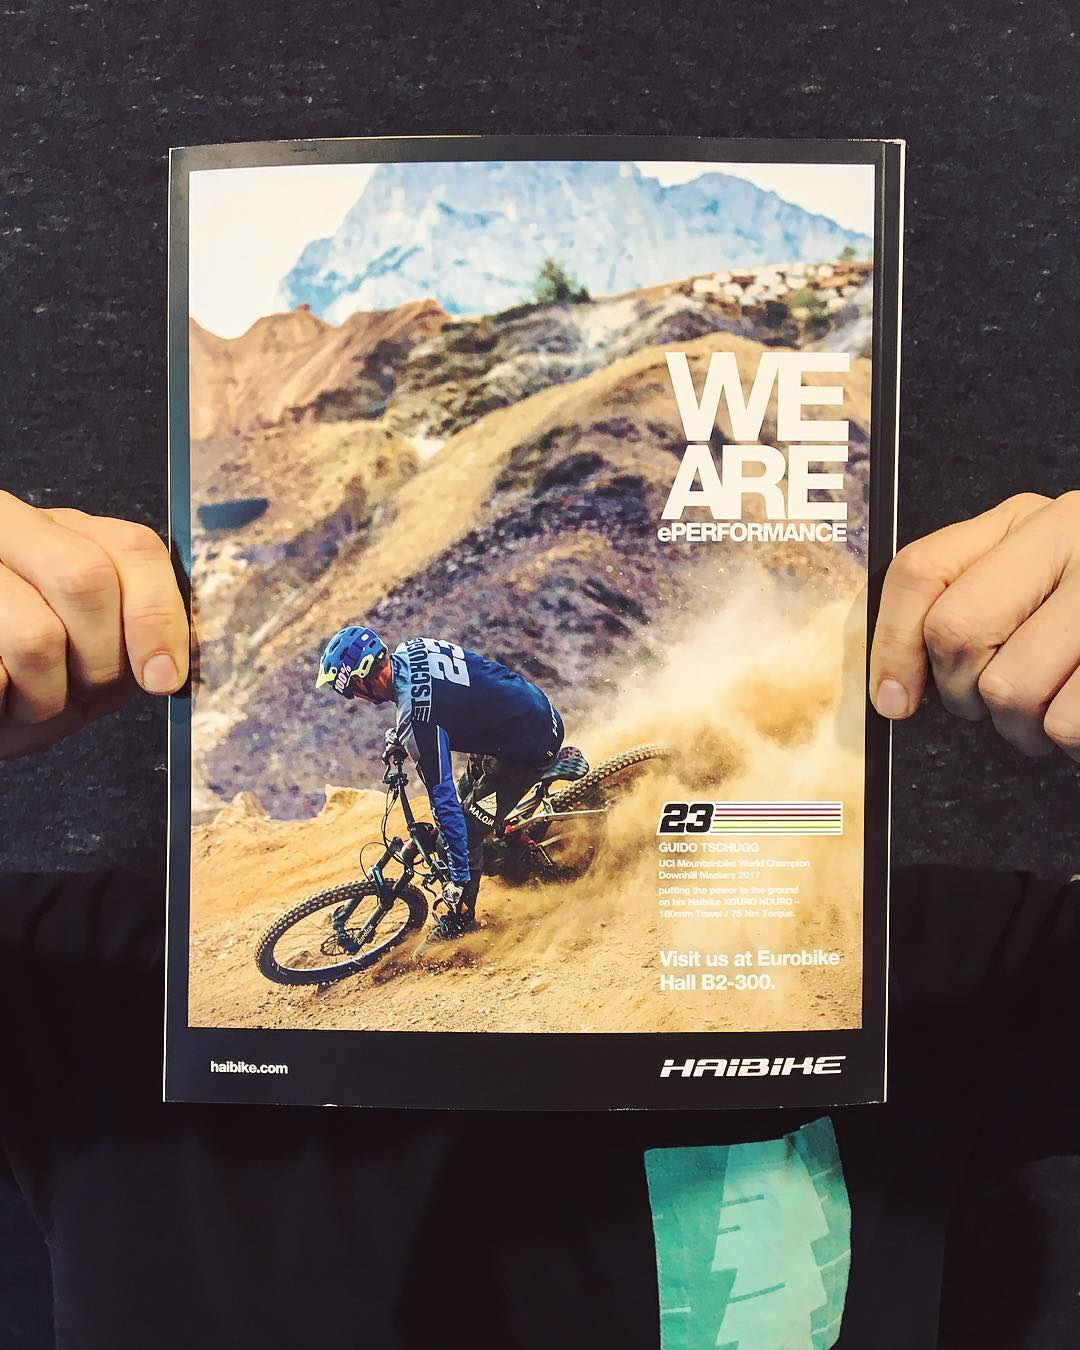 We are Weltmeister. Visit us at Eurobike Hall B2. #haibike #weareeperformance #xduro #ebike #emountainbike #emtb